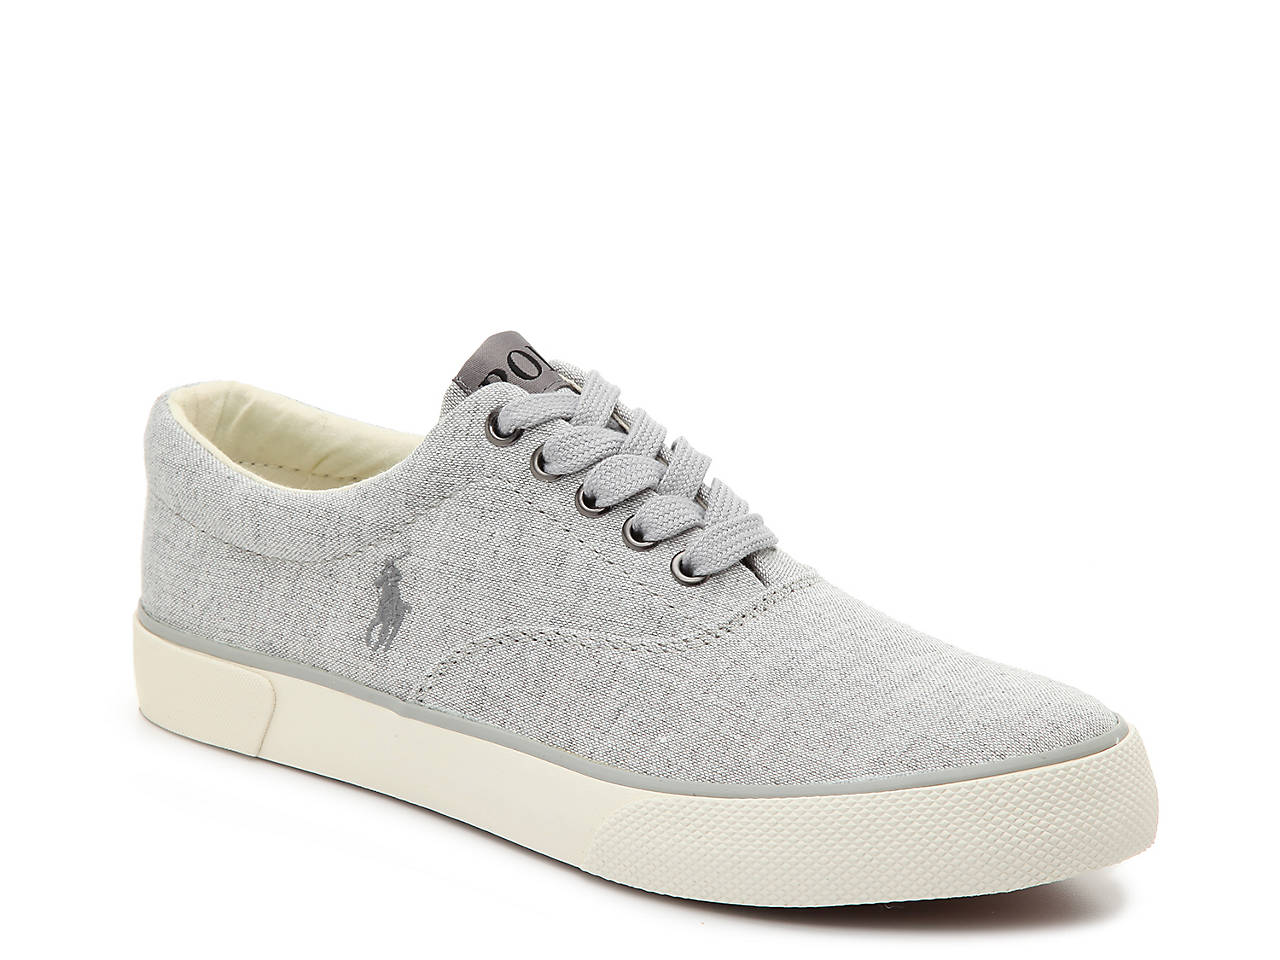 premium selection 2a3a7 61a04 Forestmont II Sneaker